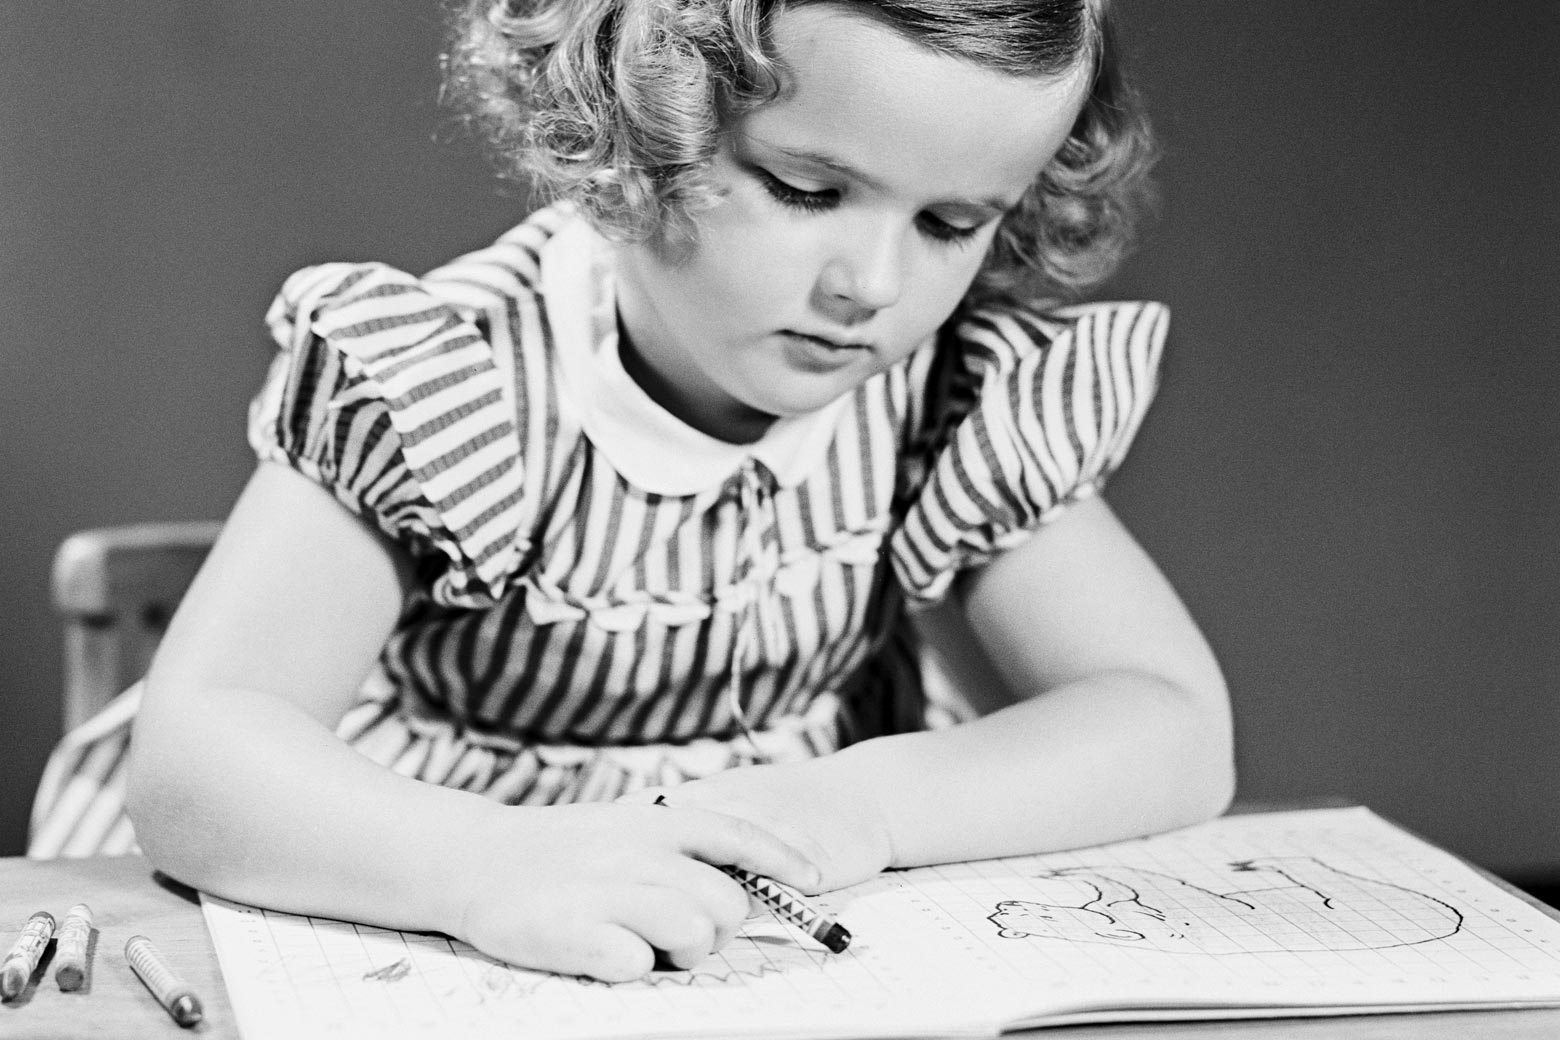 - History Of Coloring Books: There's A Sinister Reason They're So Popular  During The Coronavirus Pandemic.